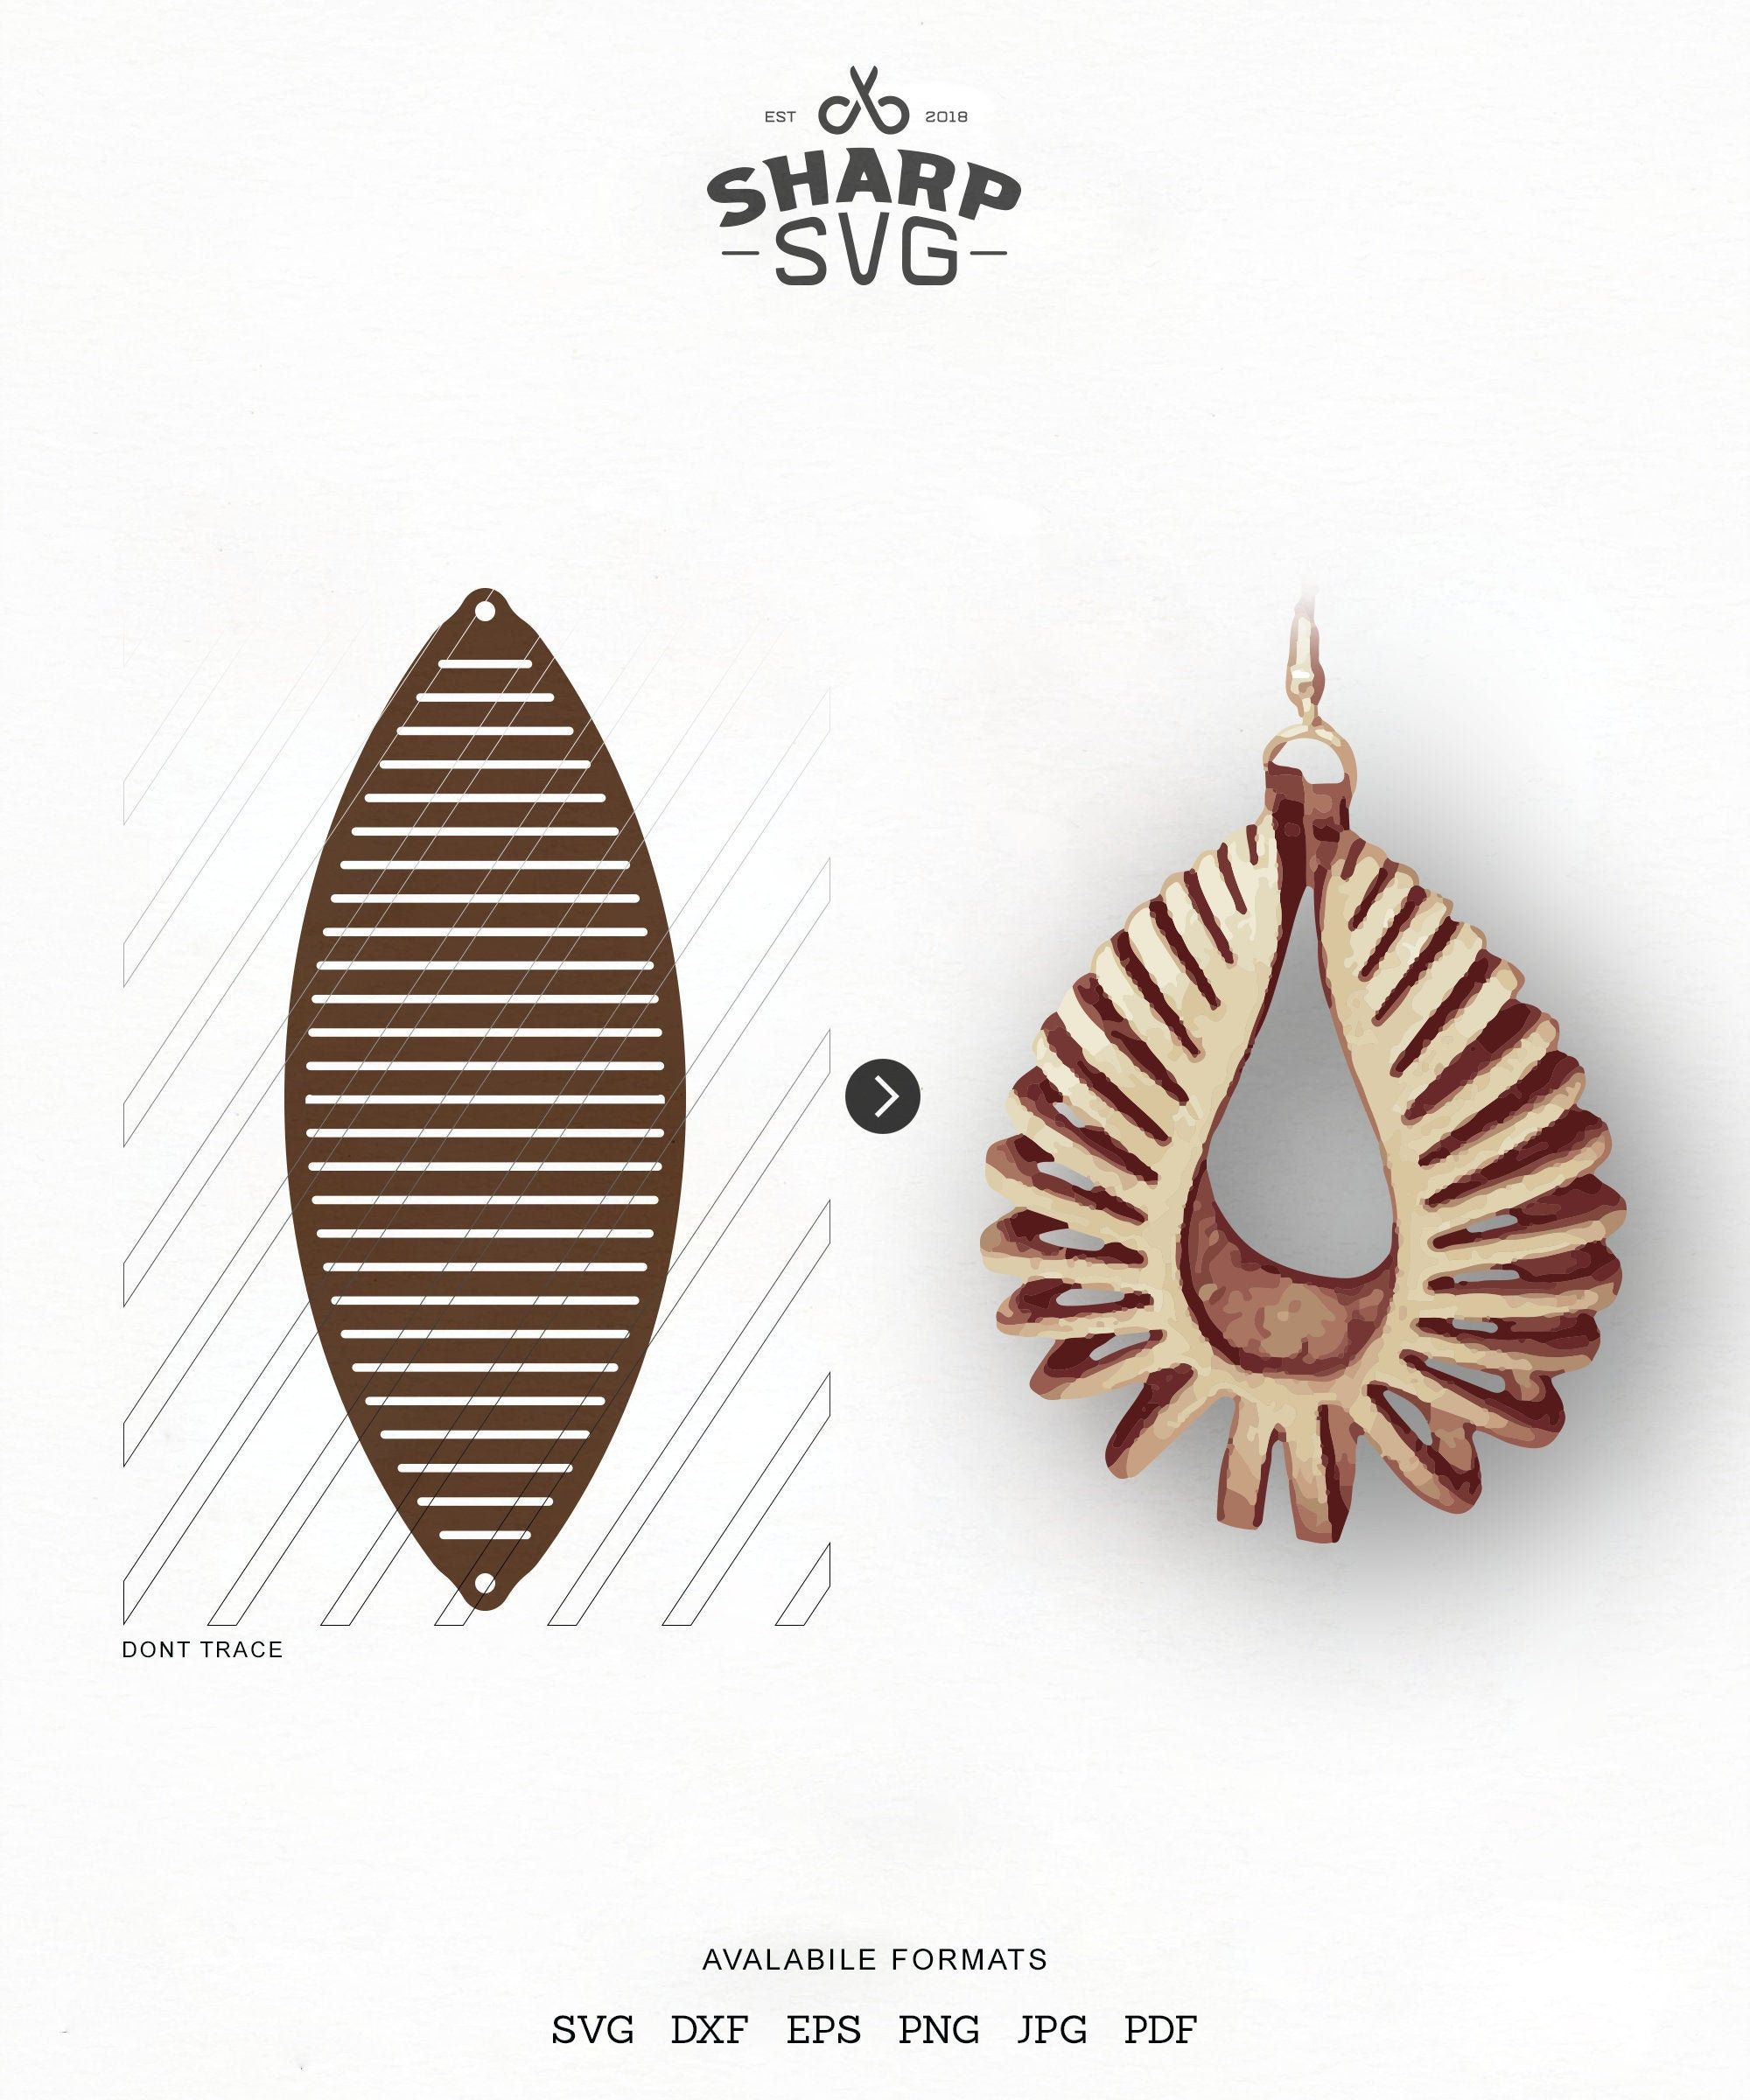 Photo of Sculpted Earring SVG, Leather Twisted SVG, Pendant SVG Tridimensional Earrings dxf 3D Leather Jewelry Laser Cut Template Commercial Use